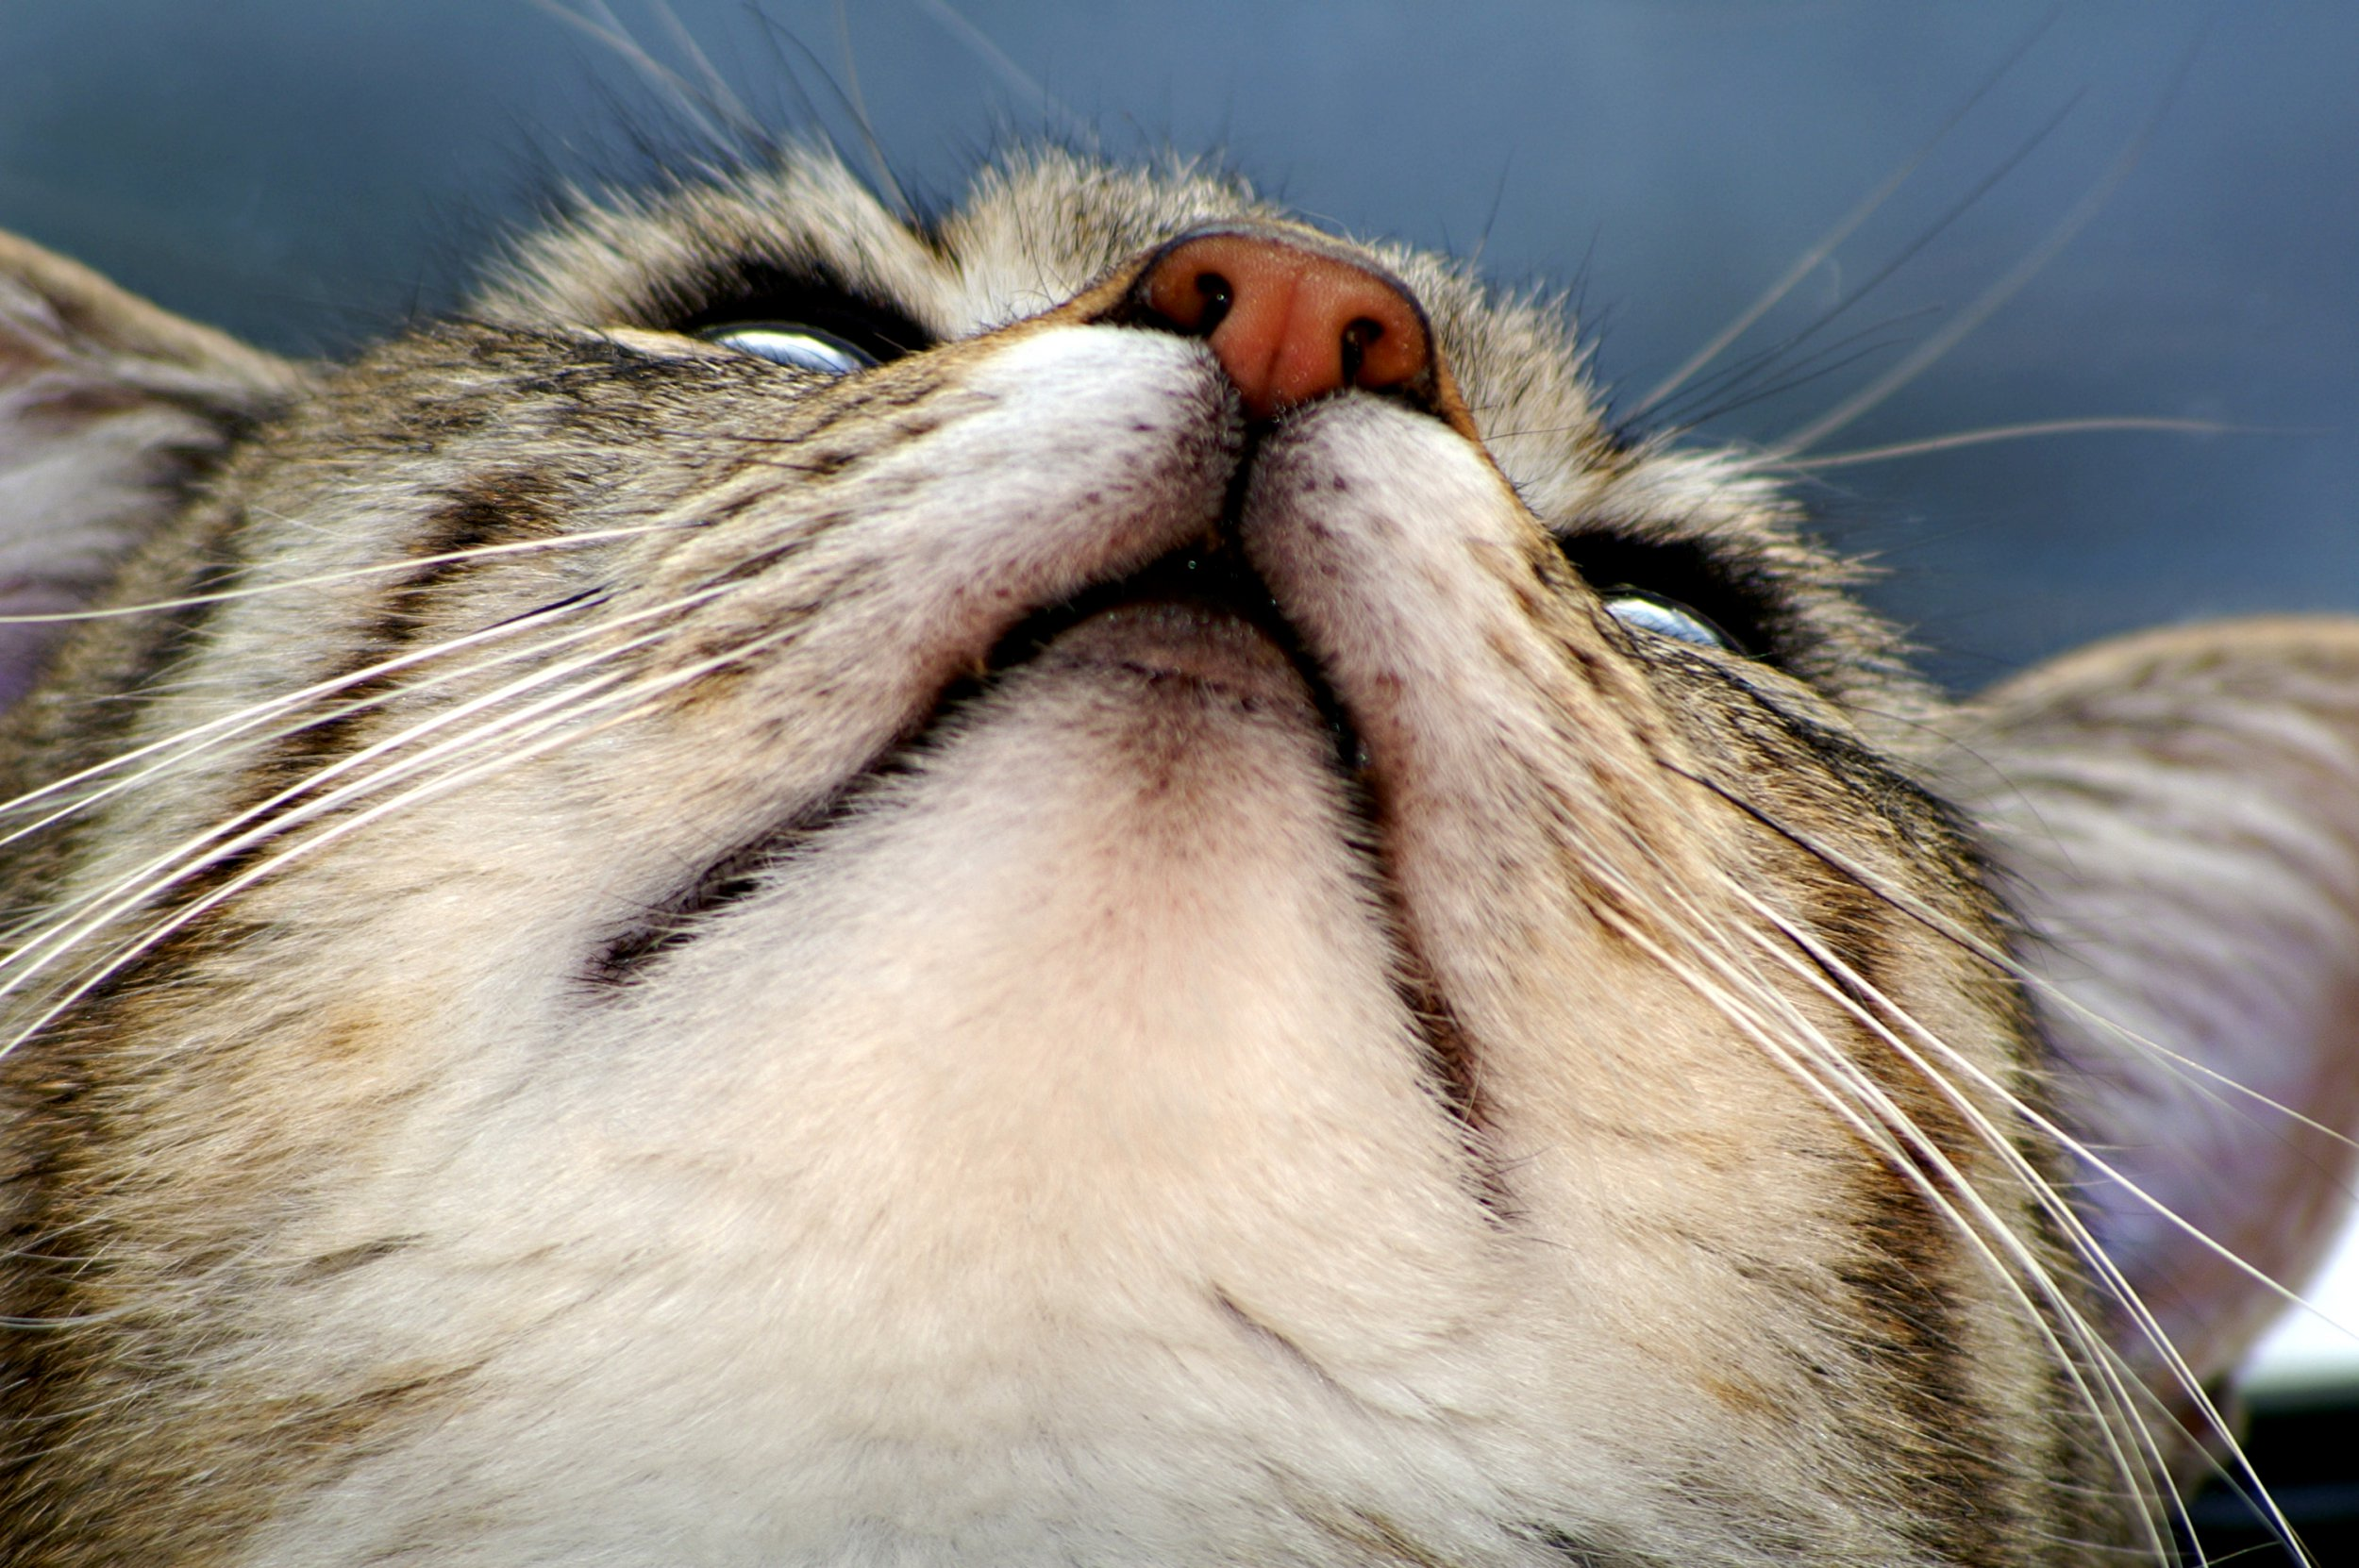 Cat acne is real – here's what you can do about it